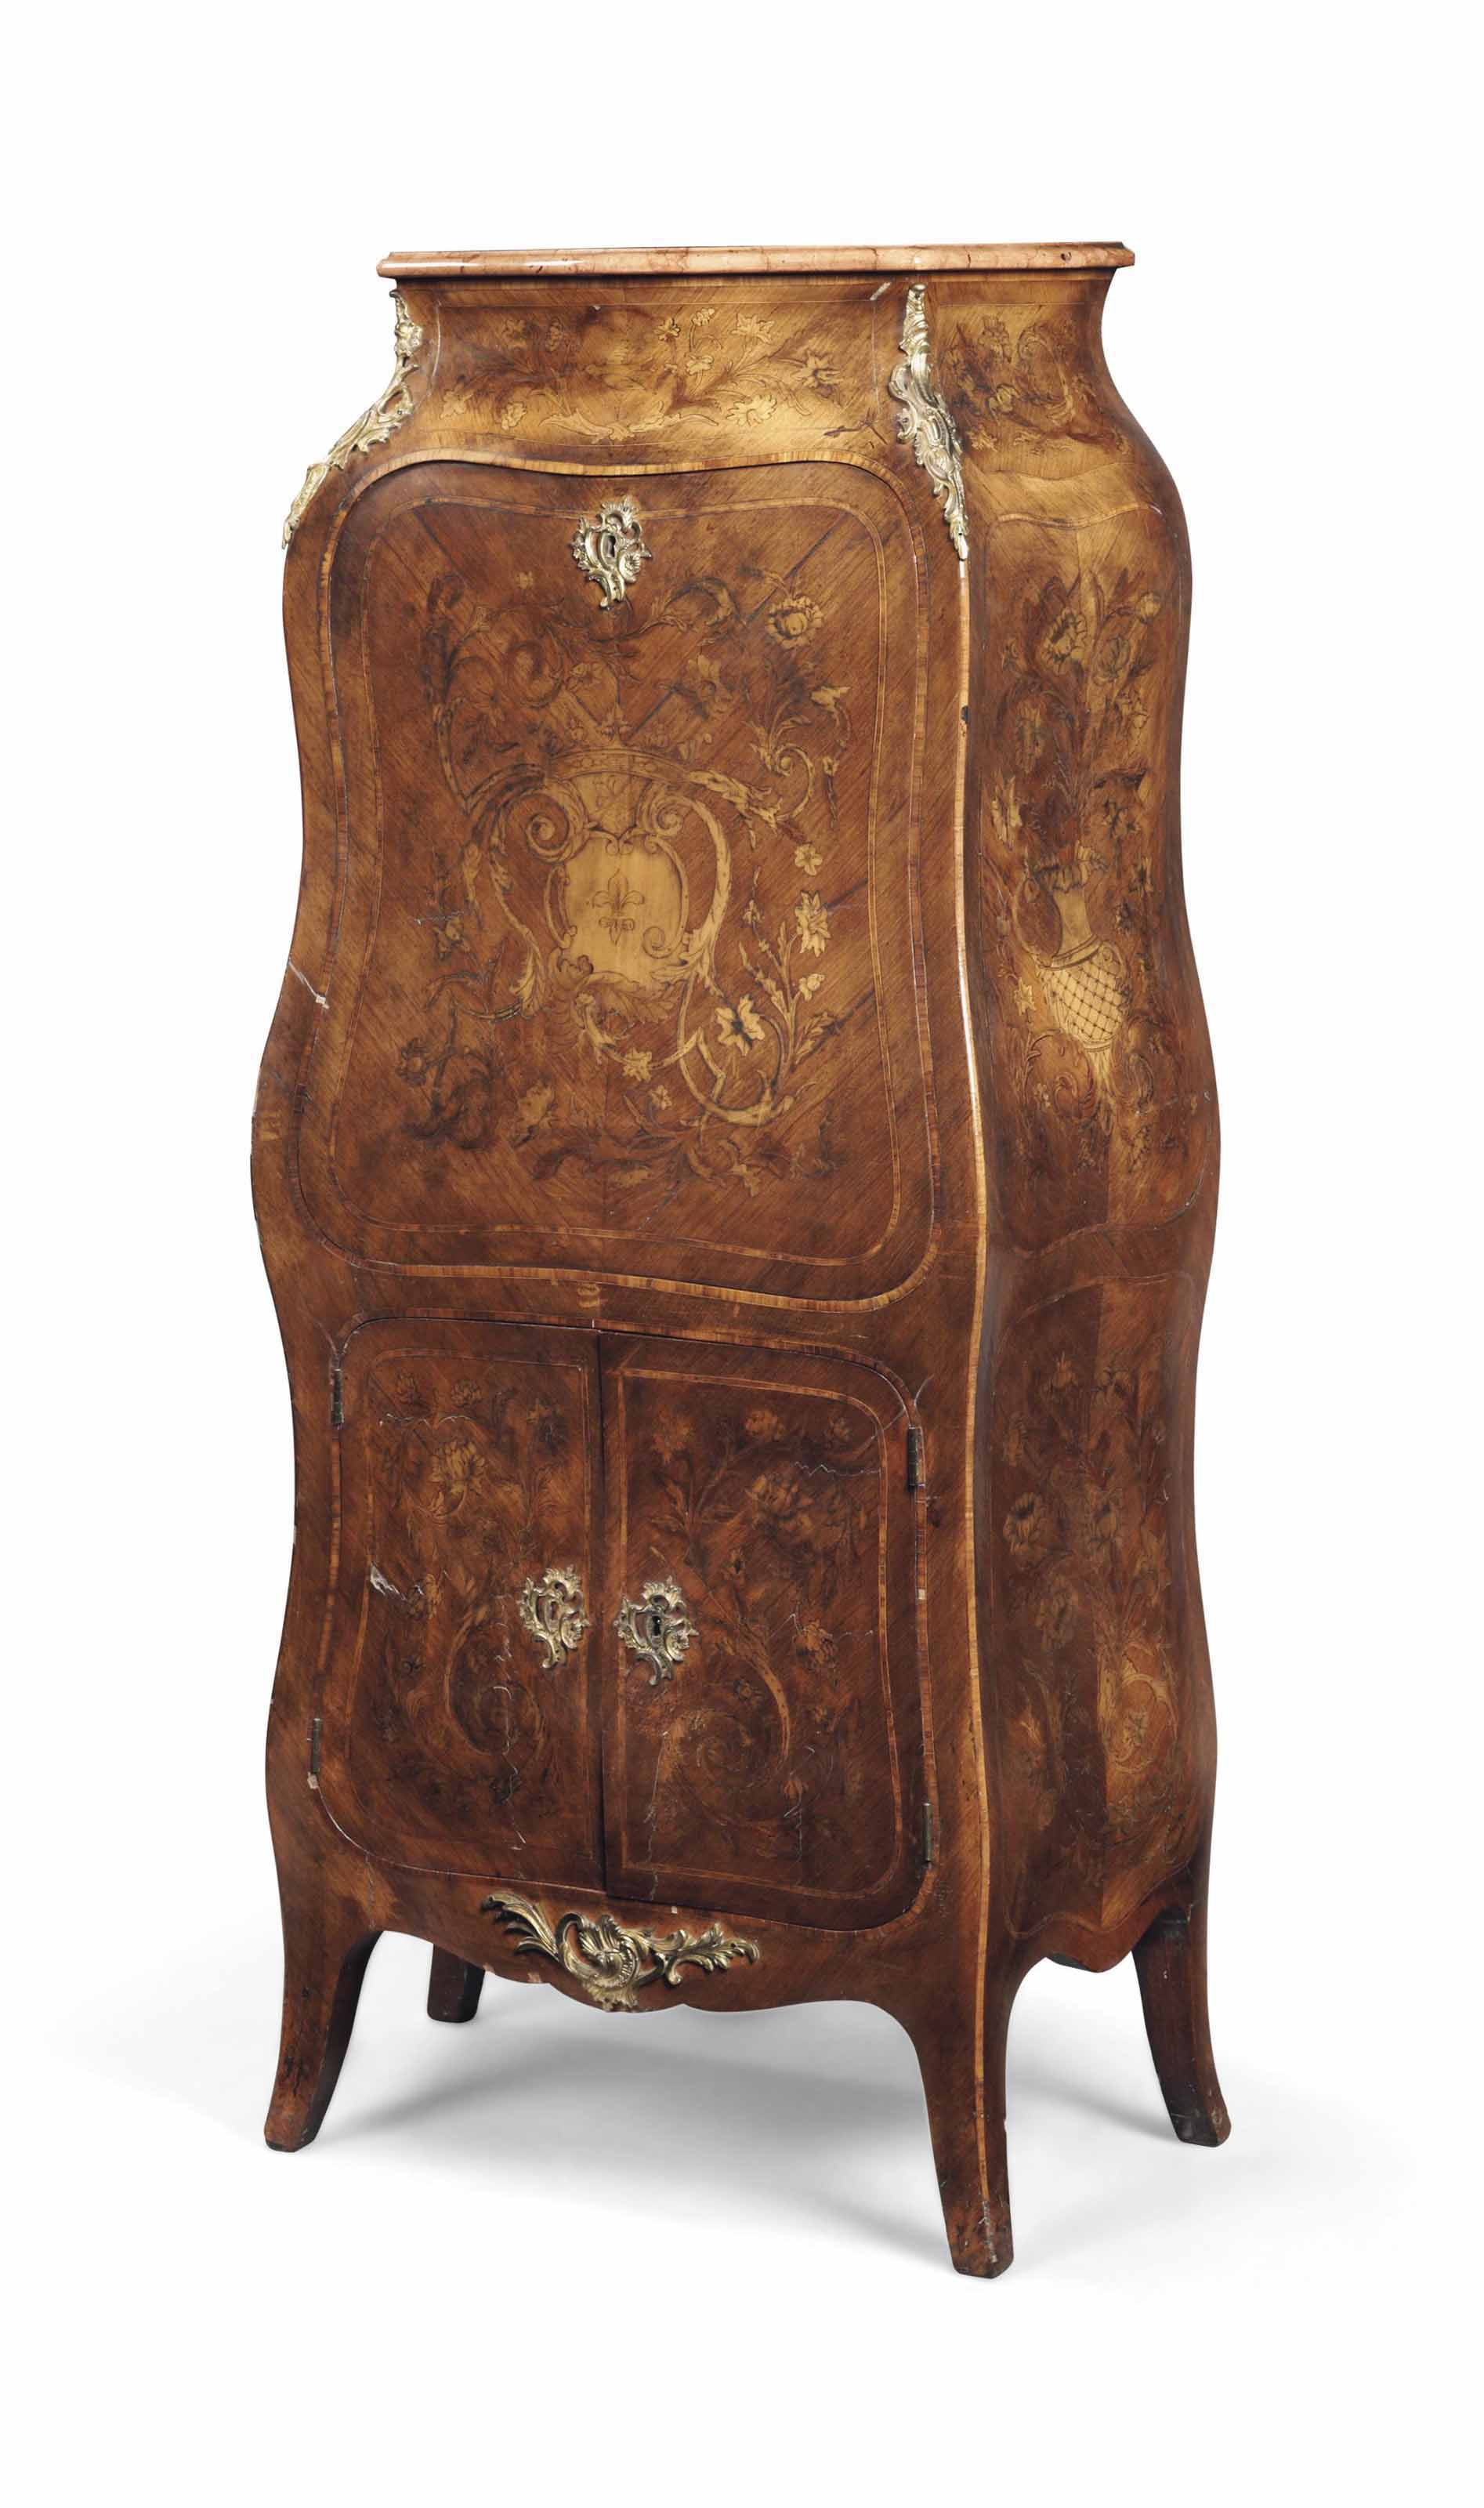 A FRENCH ORMOLU-MOUNTED KINGWOOD, TULIPWOOD AND MARQUETRY BOMBE SECRETAIRE A ABATTANT